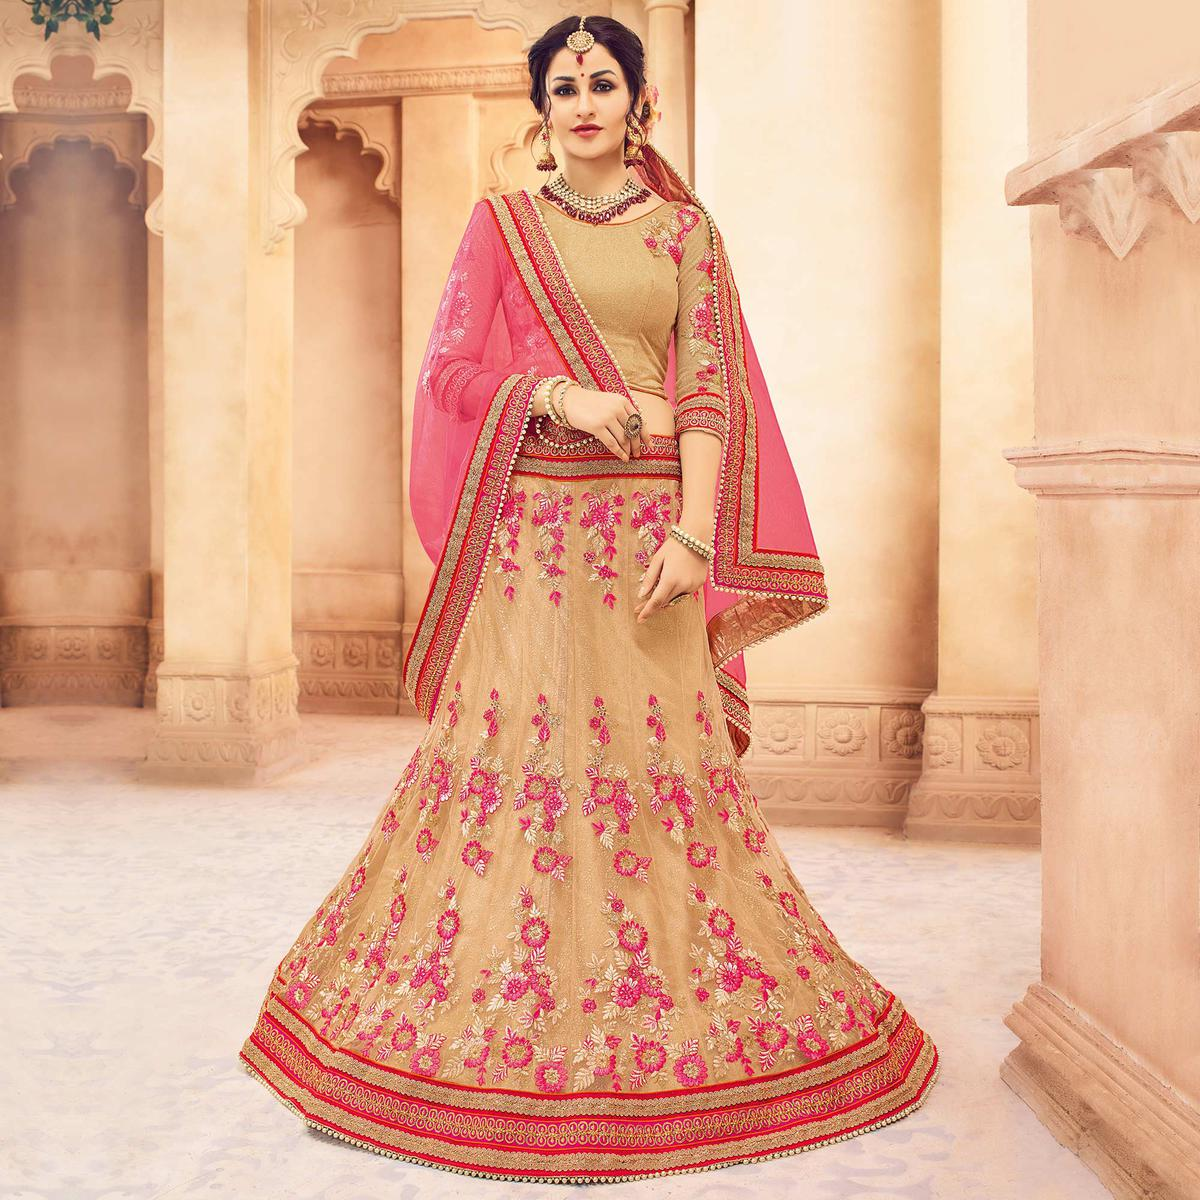 91486b61f3 Buy Stunning Beige-Pink Designer Embroidered Butterfly Net Lehenga Choli  for womens online India, Best Prices, Reviews - Peachmode